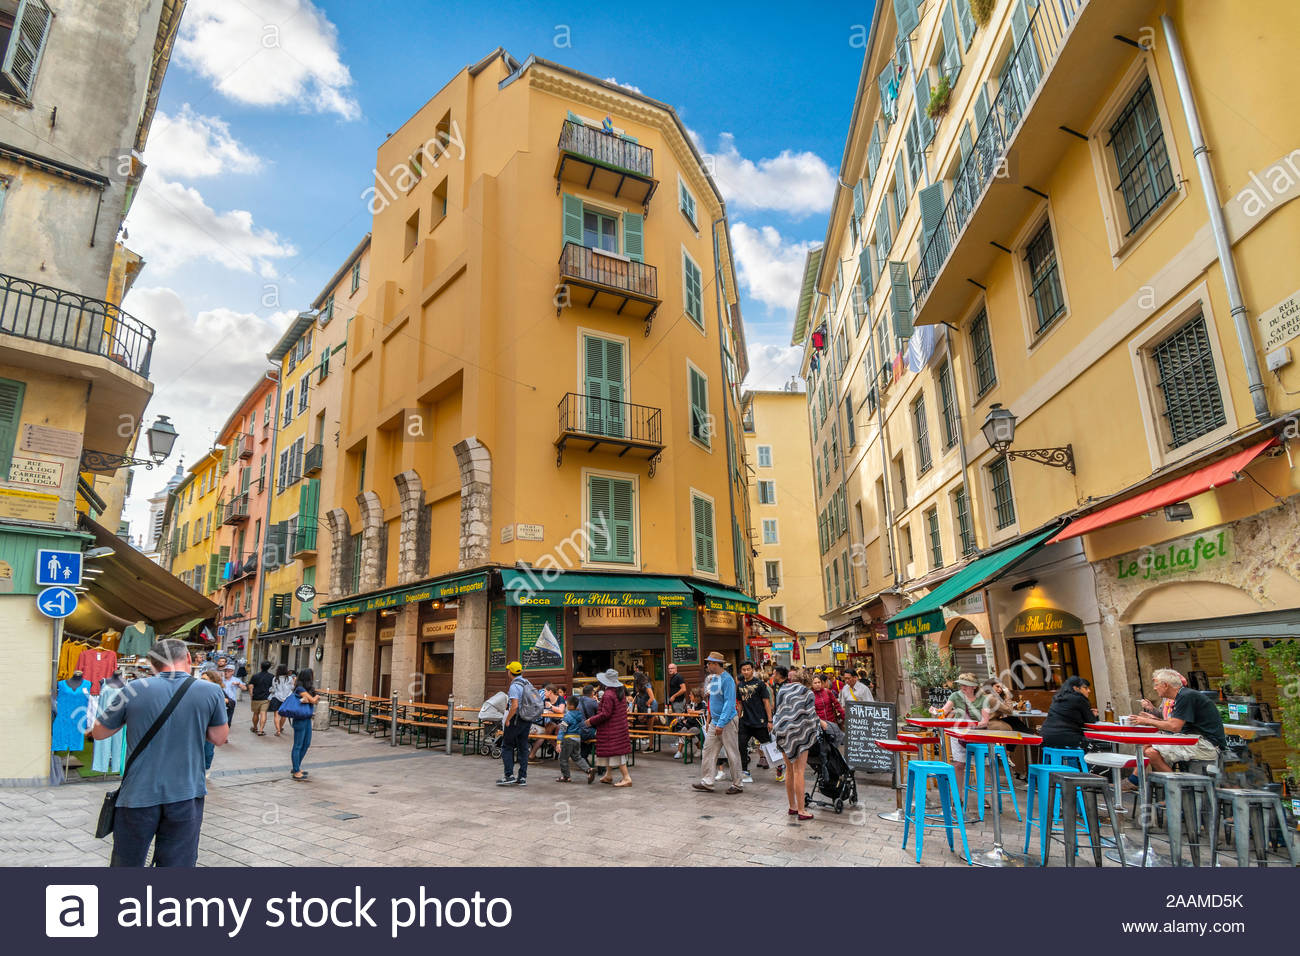 Tourists gather at one of the many sharp corners and turns in the twisty, winding Old Town of Vieux Nice, France, on the French Riviera Stock Photo